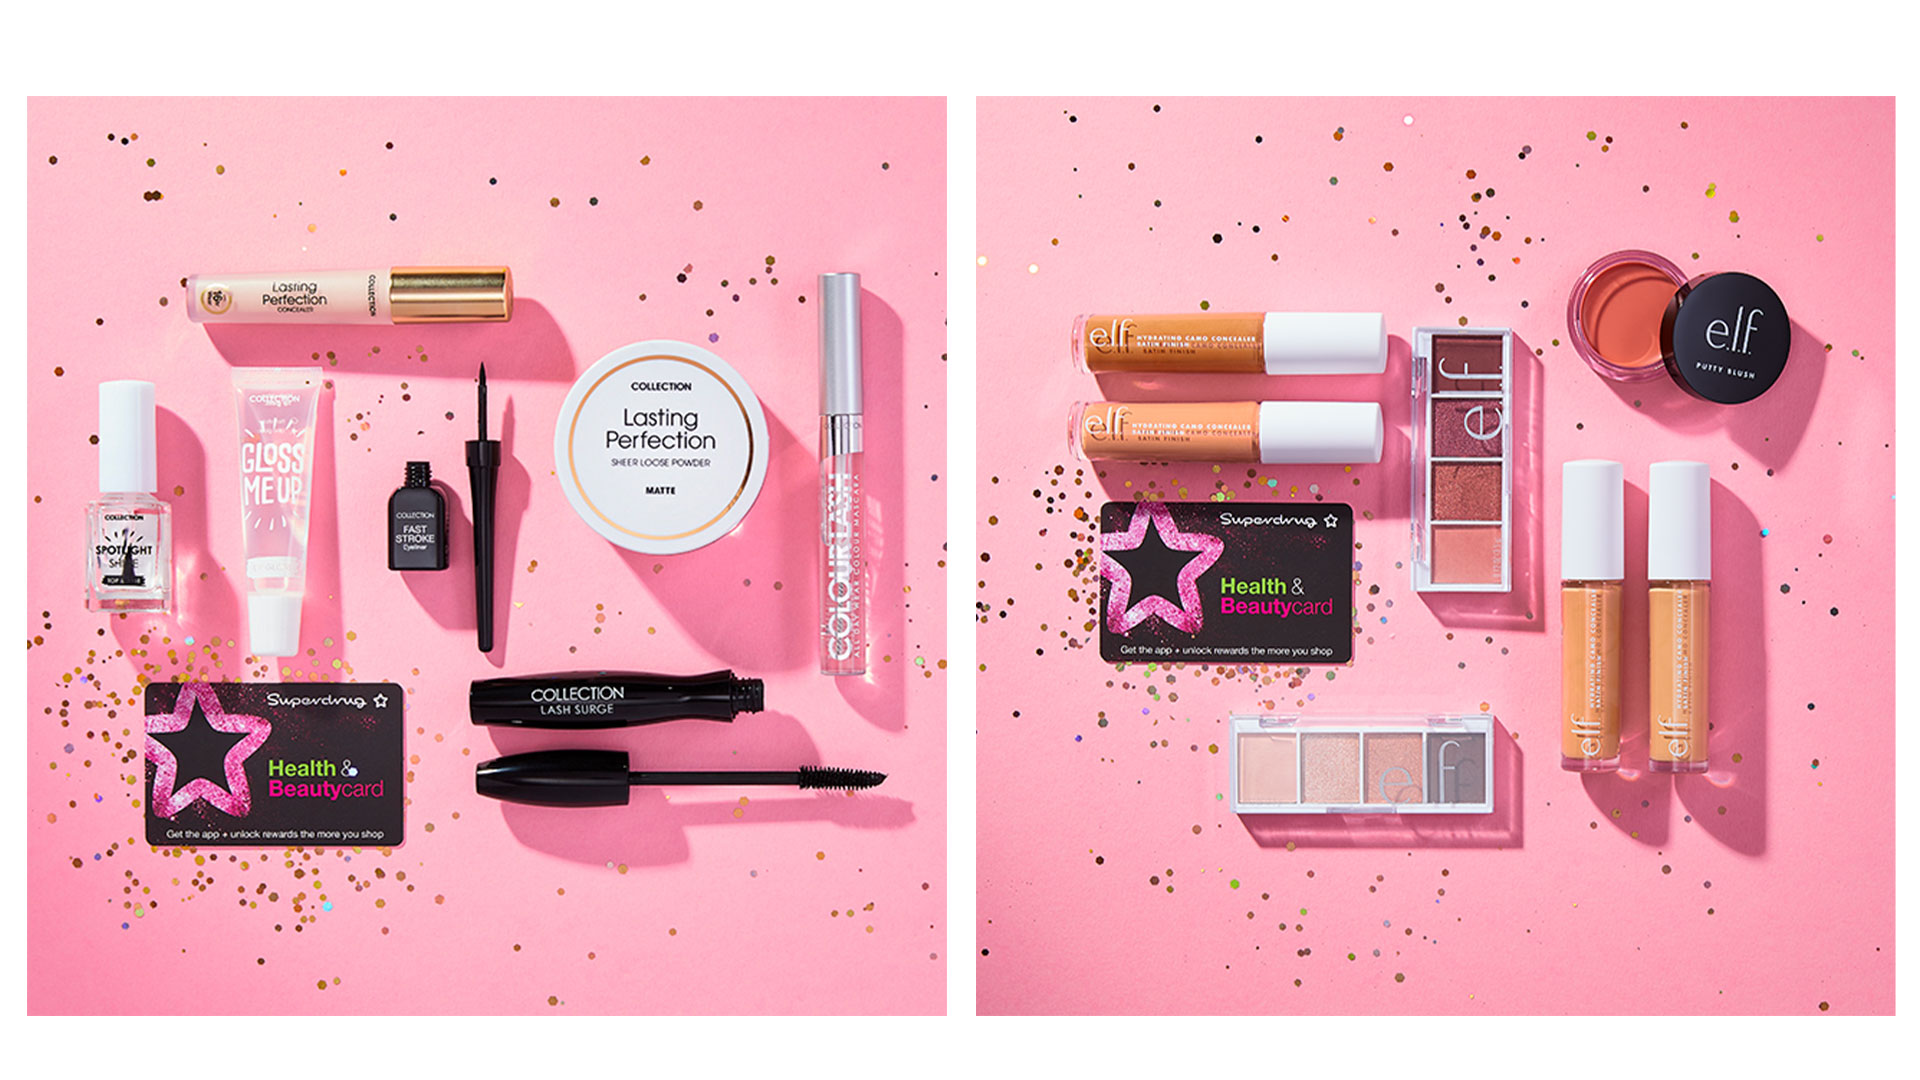 superdrug product photography beauty cosmetics